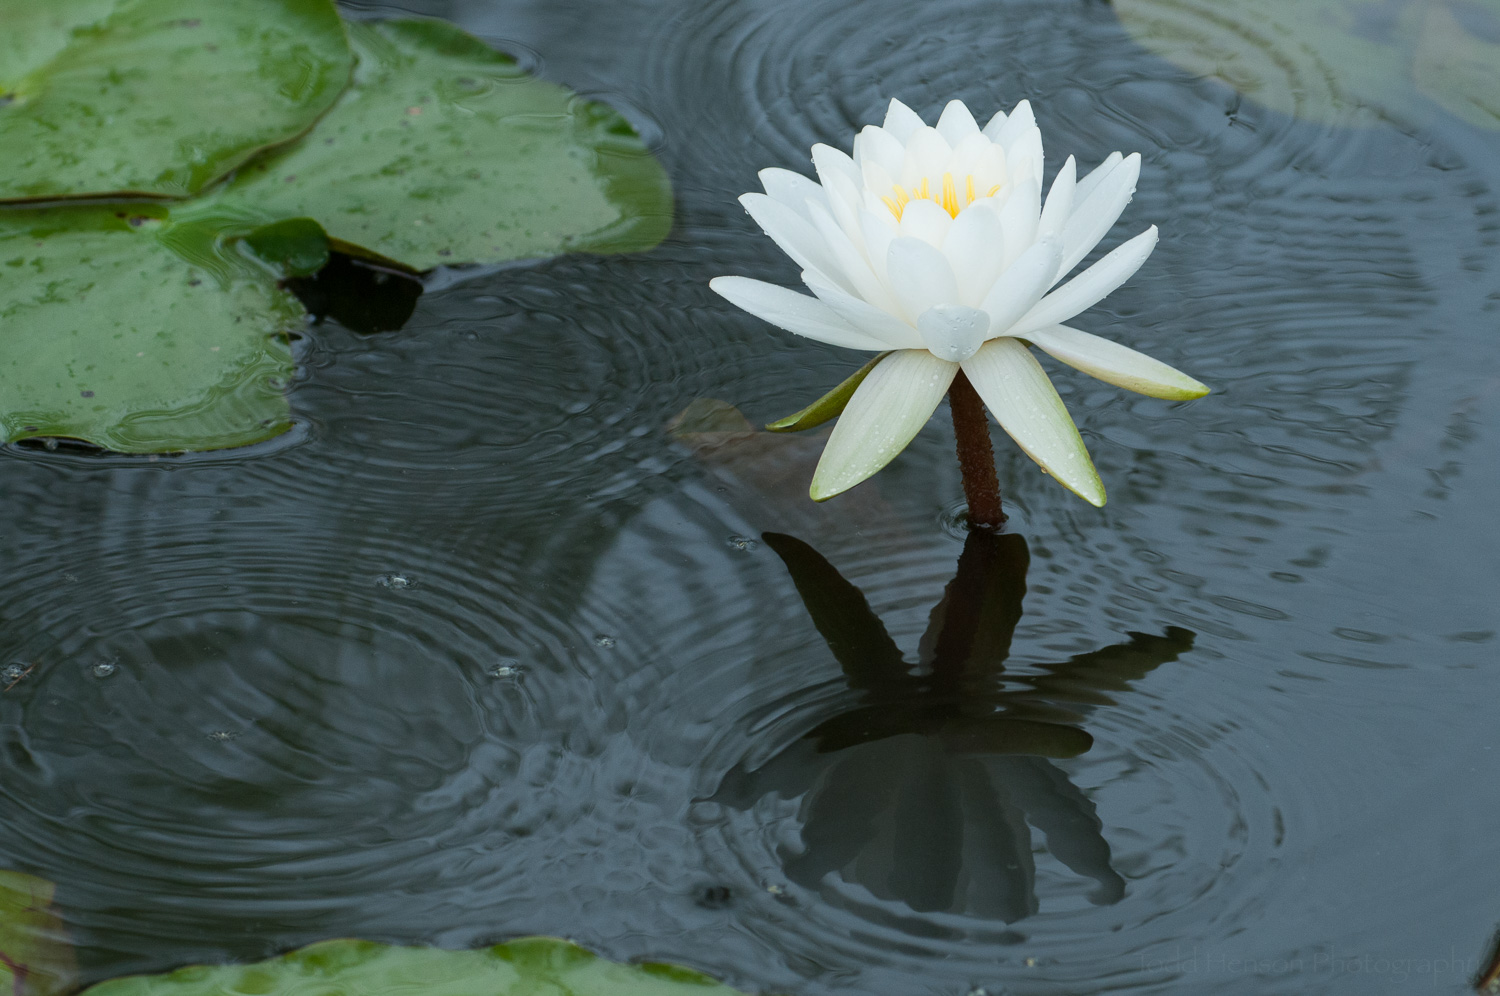 White Water Lily with ripples in pond